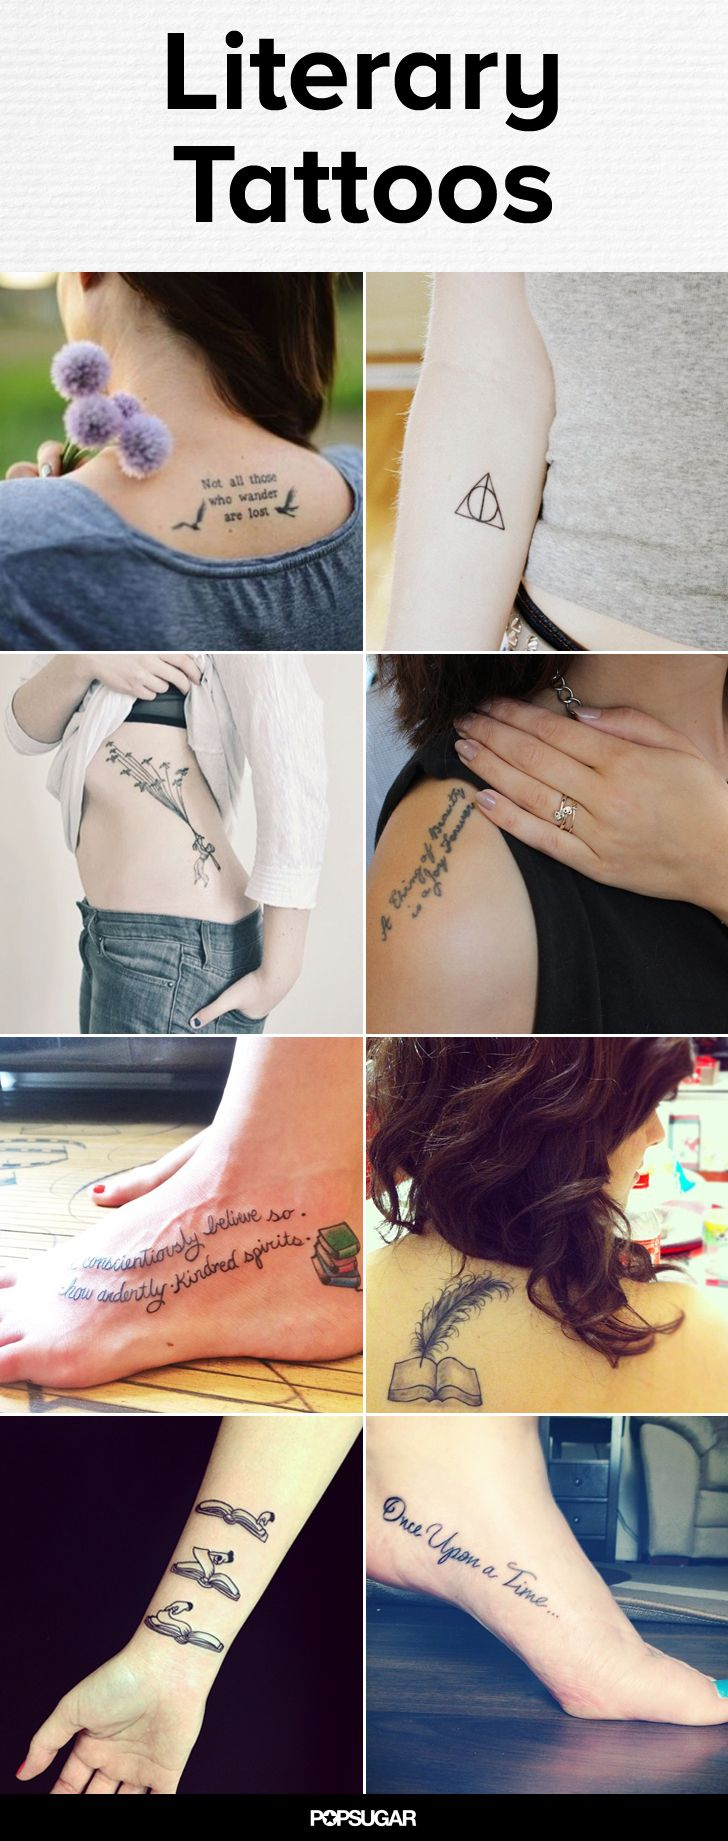 Book tattoos are so awesome! Getting one on my wrist of an open book when I'm 18!